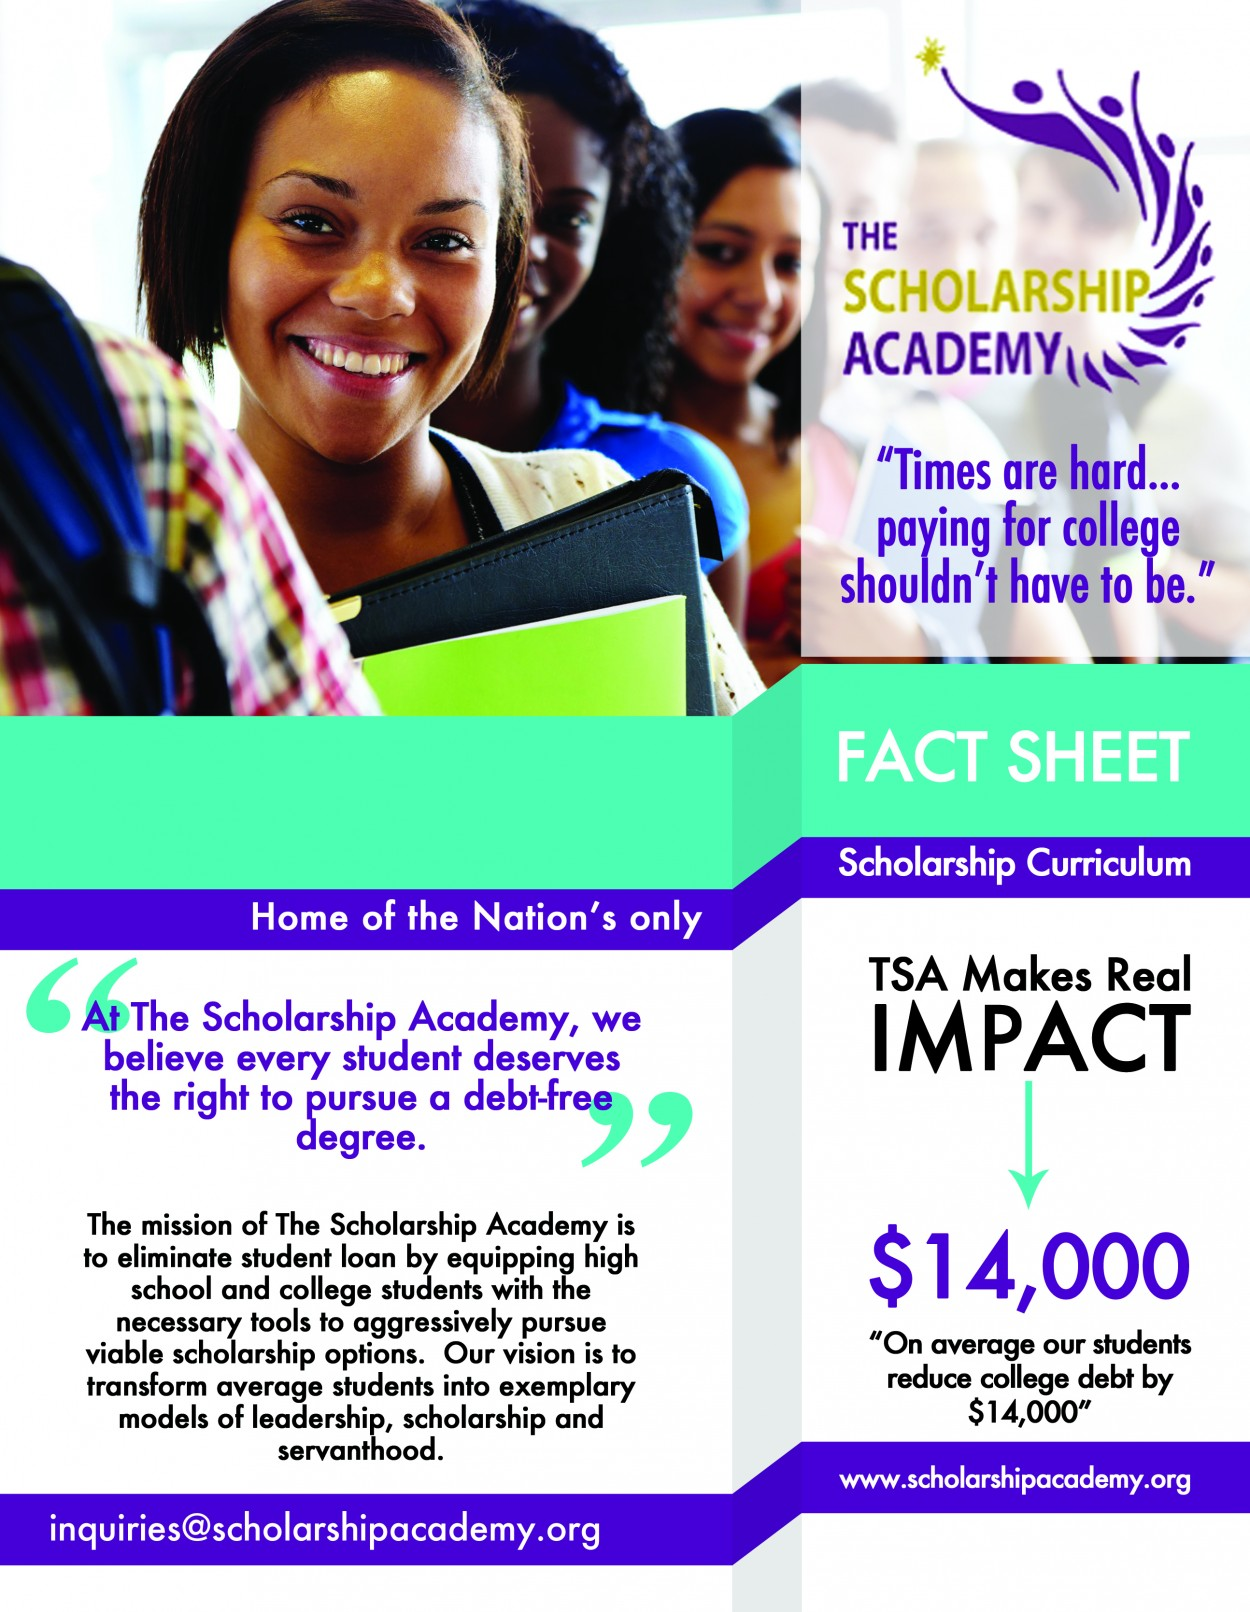 Scholarship Academy Fact Sheet